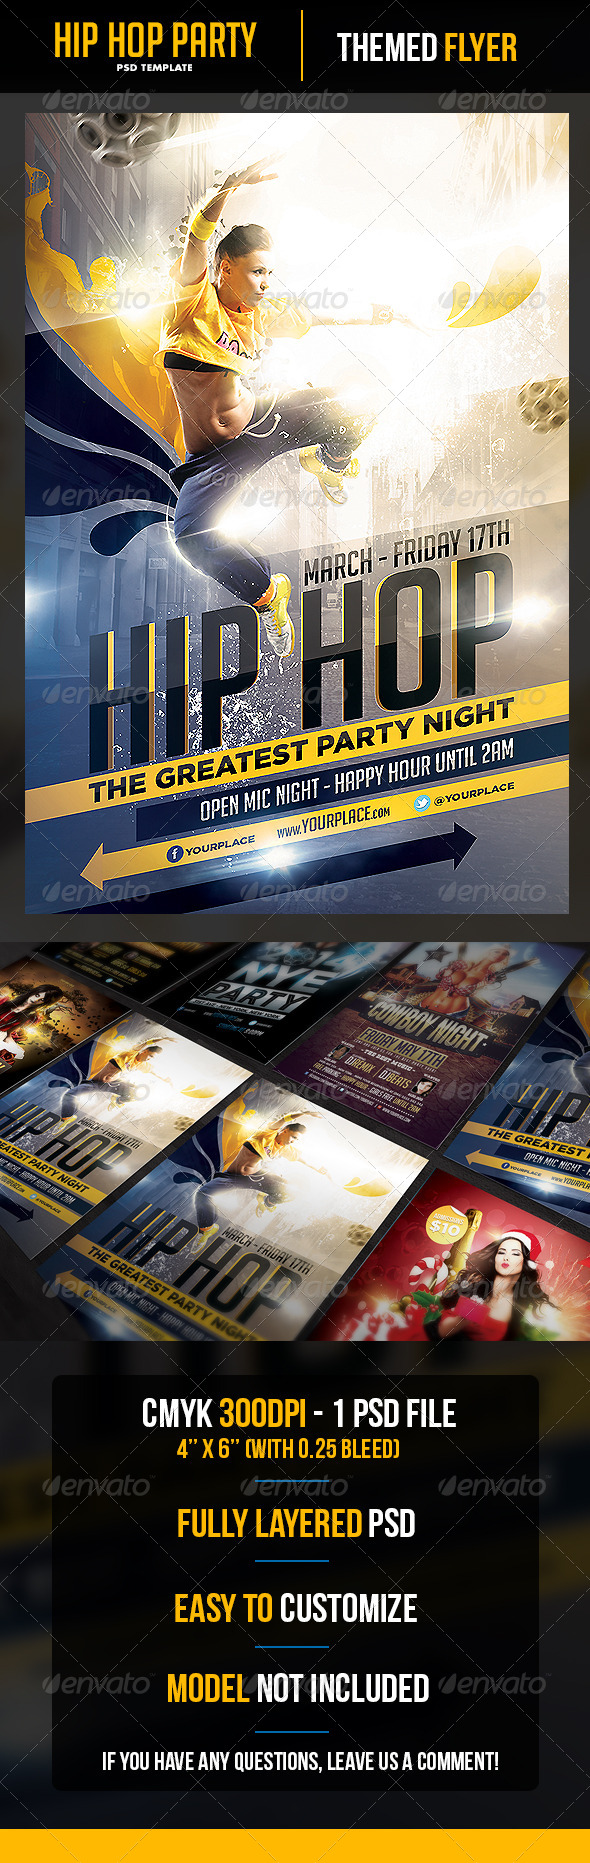 GraphicRiver Hip Hop Party Flyer Template 6525809